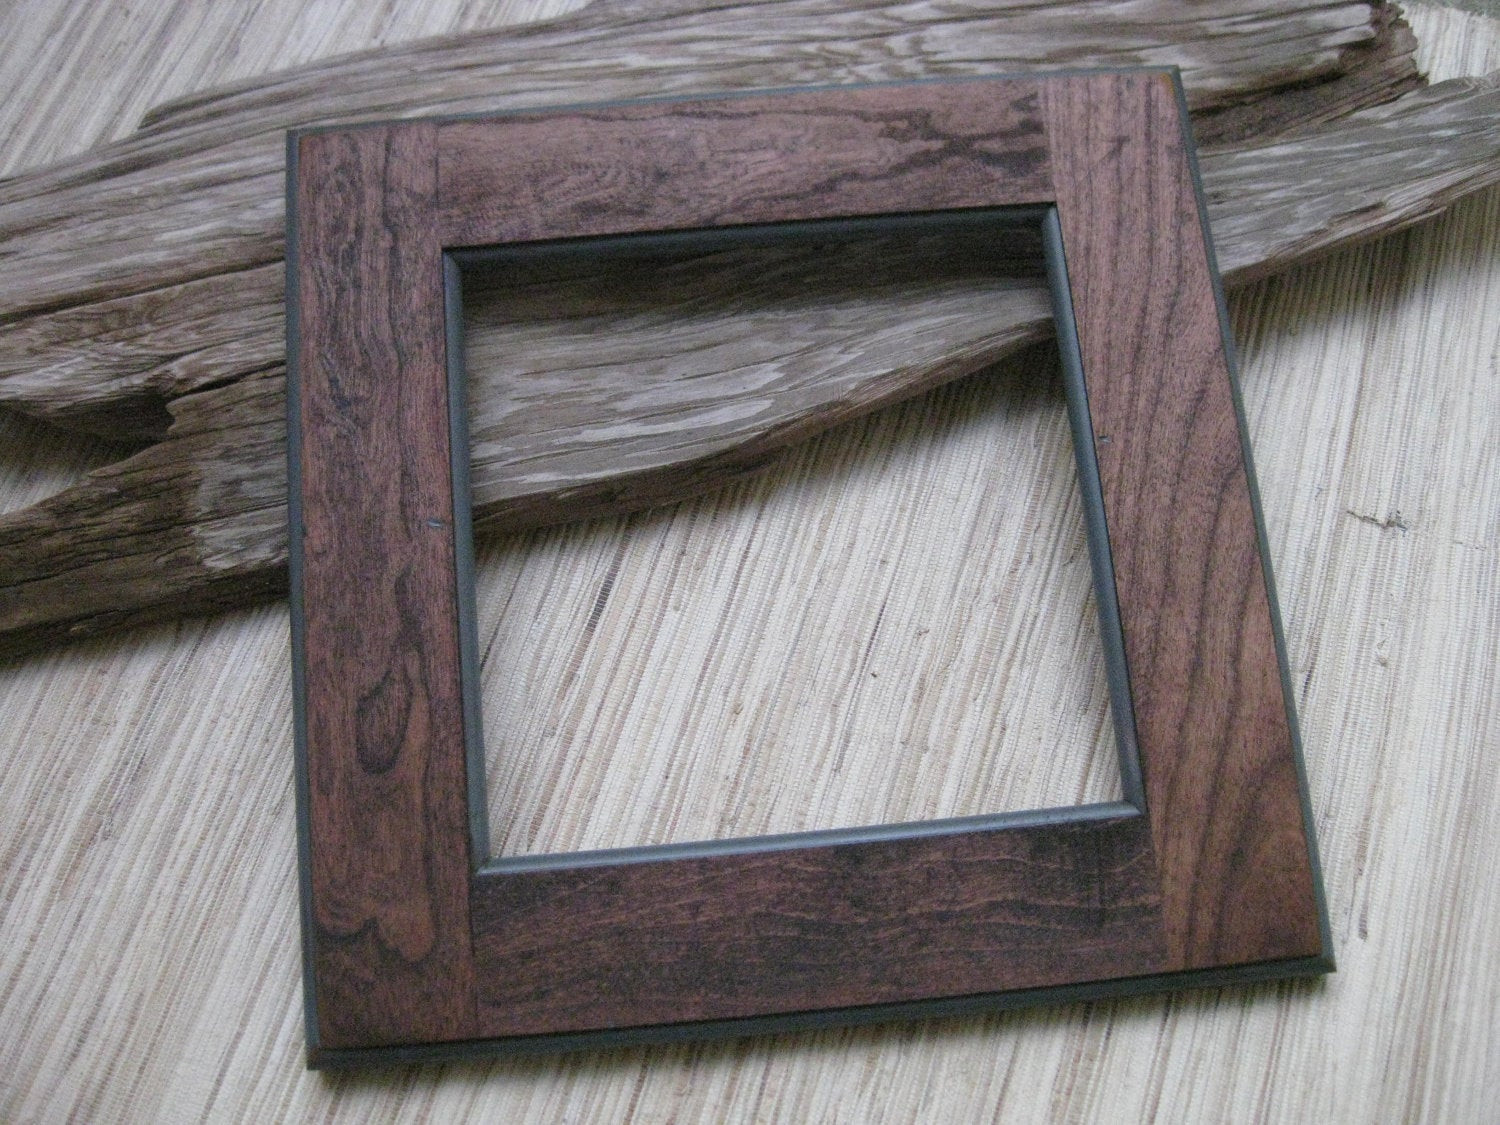 Best ideas about DIY Wooden Frames . Save or Pin Rustic Cherry Wood Frame Reclaimed Cabinet Door Frame DIY Now.